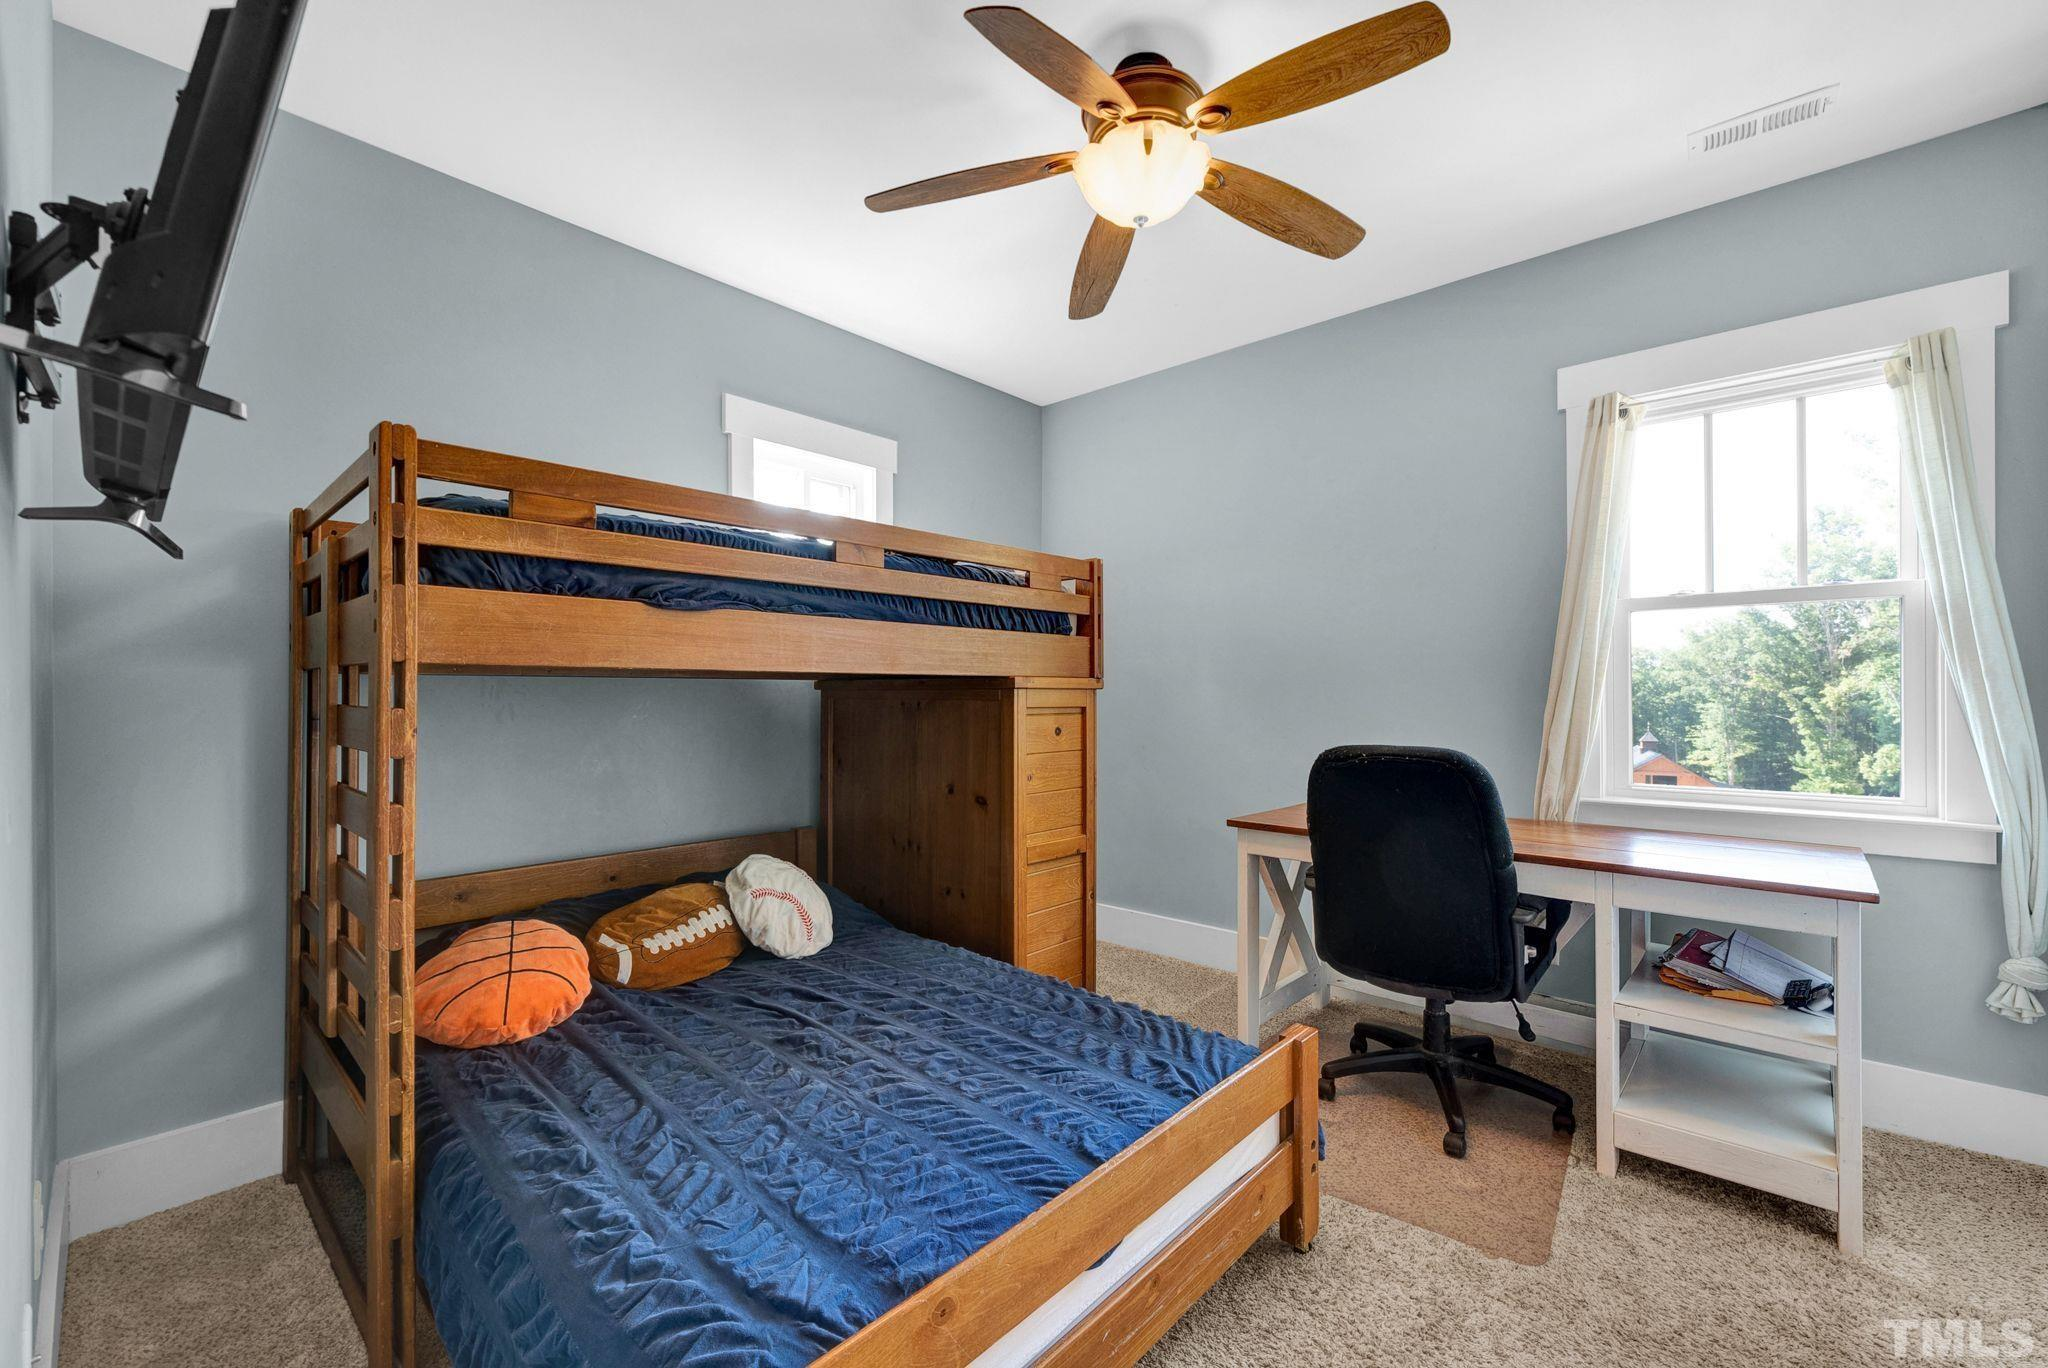 AMAZING 11+ acres that is a  private residence AND can be used for weddings/camp/farm.  Two living areas. Main FL has 4BR + full kitchen, 2nd FL has 3BR and 2nd kitchen + living area.  In-law suite.  GORGEOUS 20' high ceilings.  10' rest of 1st fl.  Oversized media room, inground pool and Amish barn.  Great indoor/outdoor lifestyle.  Country living and yet just 3 miles to downtown HS and minutes  to 55 and fabulous amenities. What a fabulous opportunity!!!